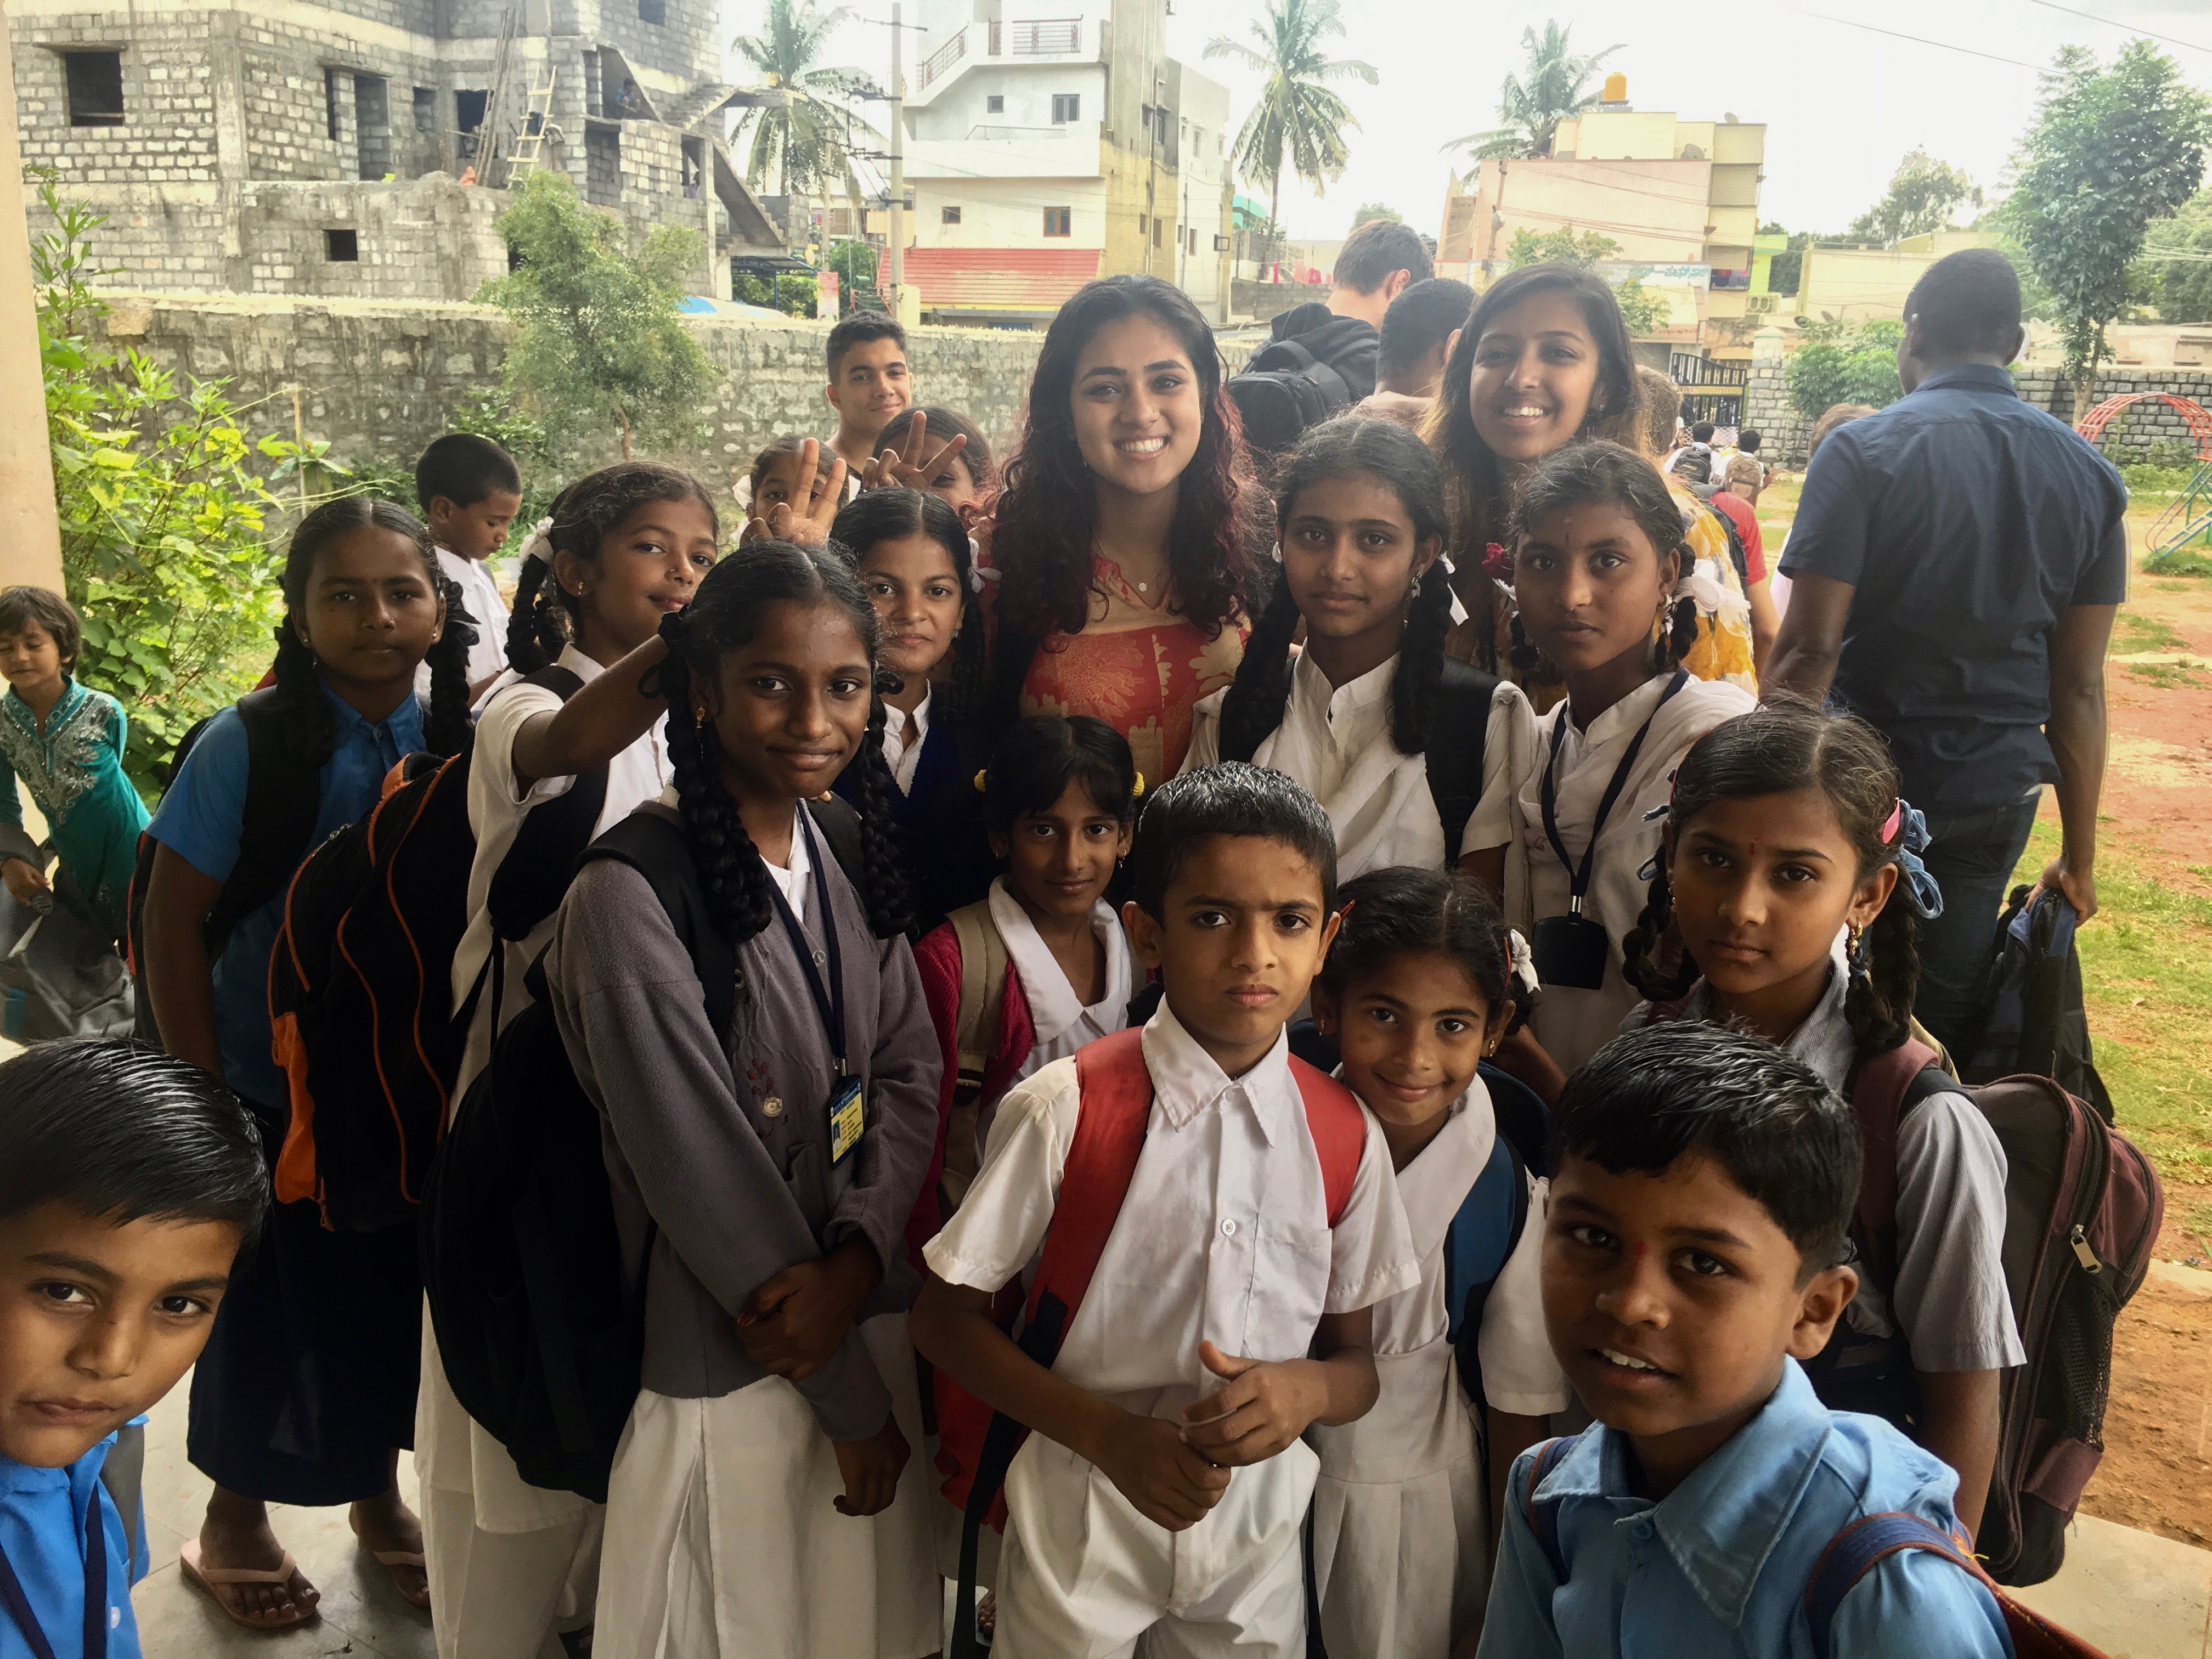 picture of Priya and her friend Nidha with a group of elementary students in Bangalore, India